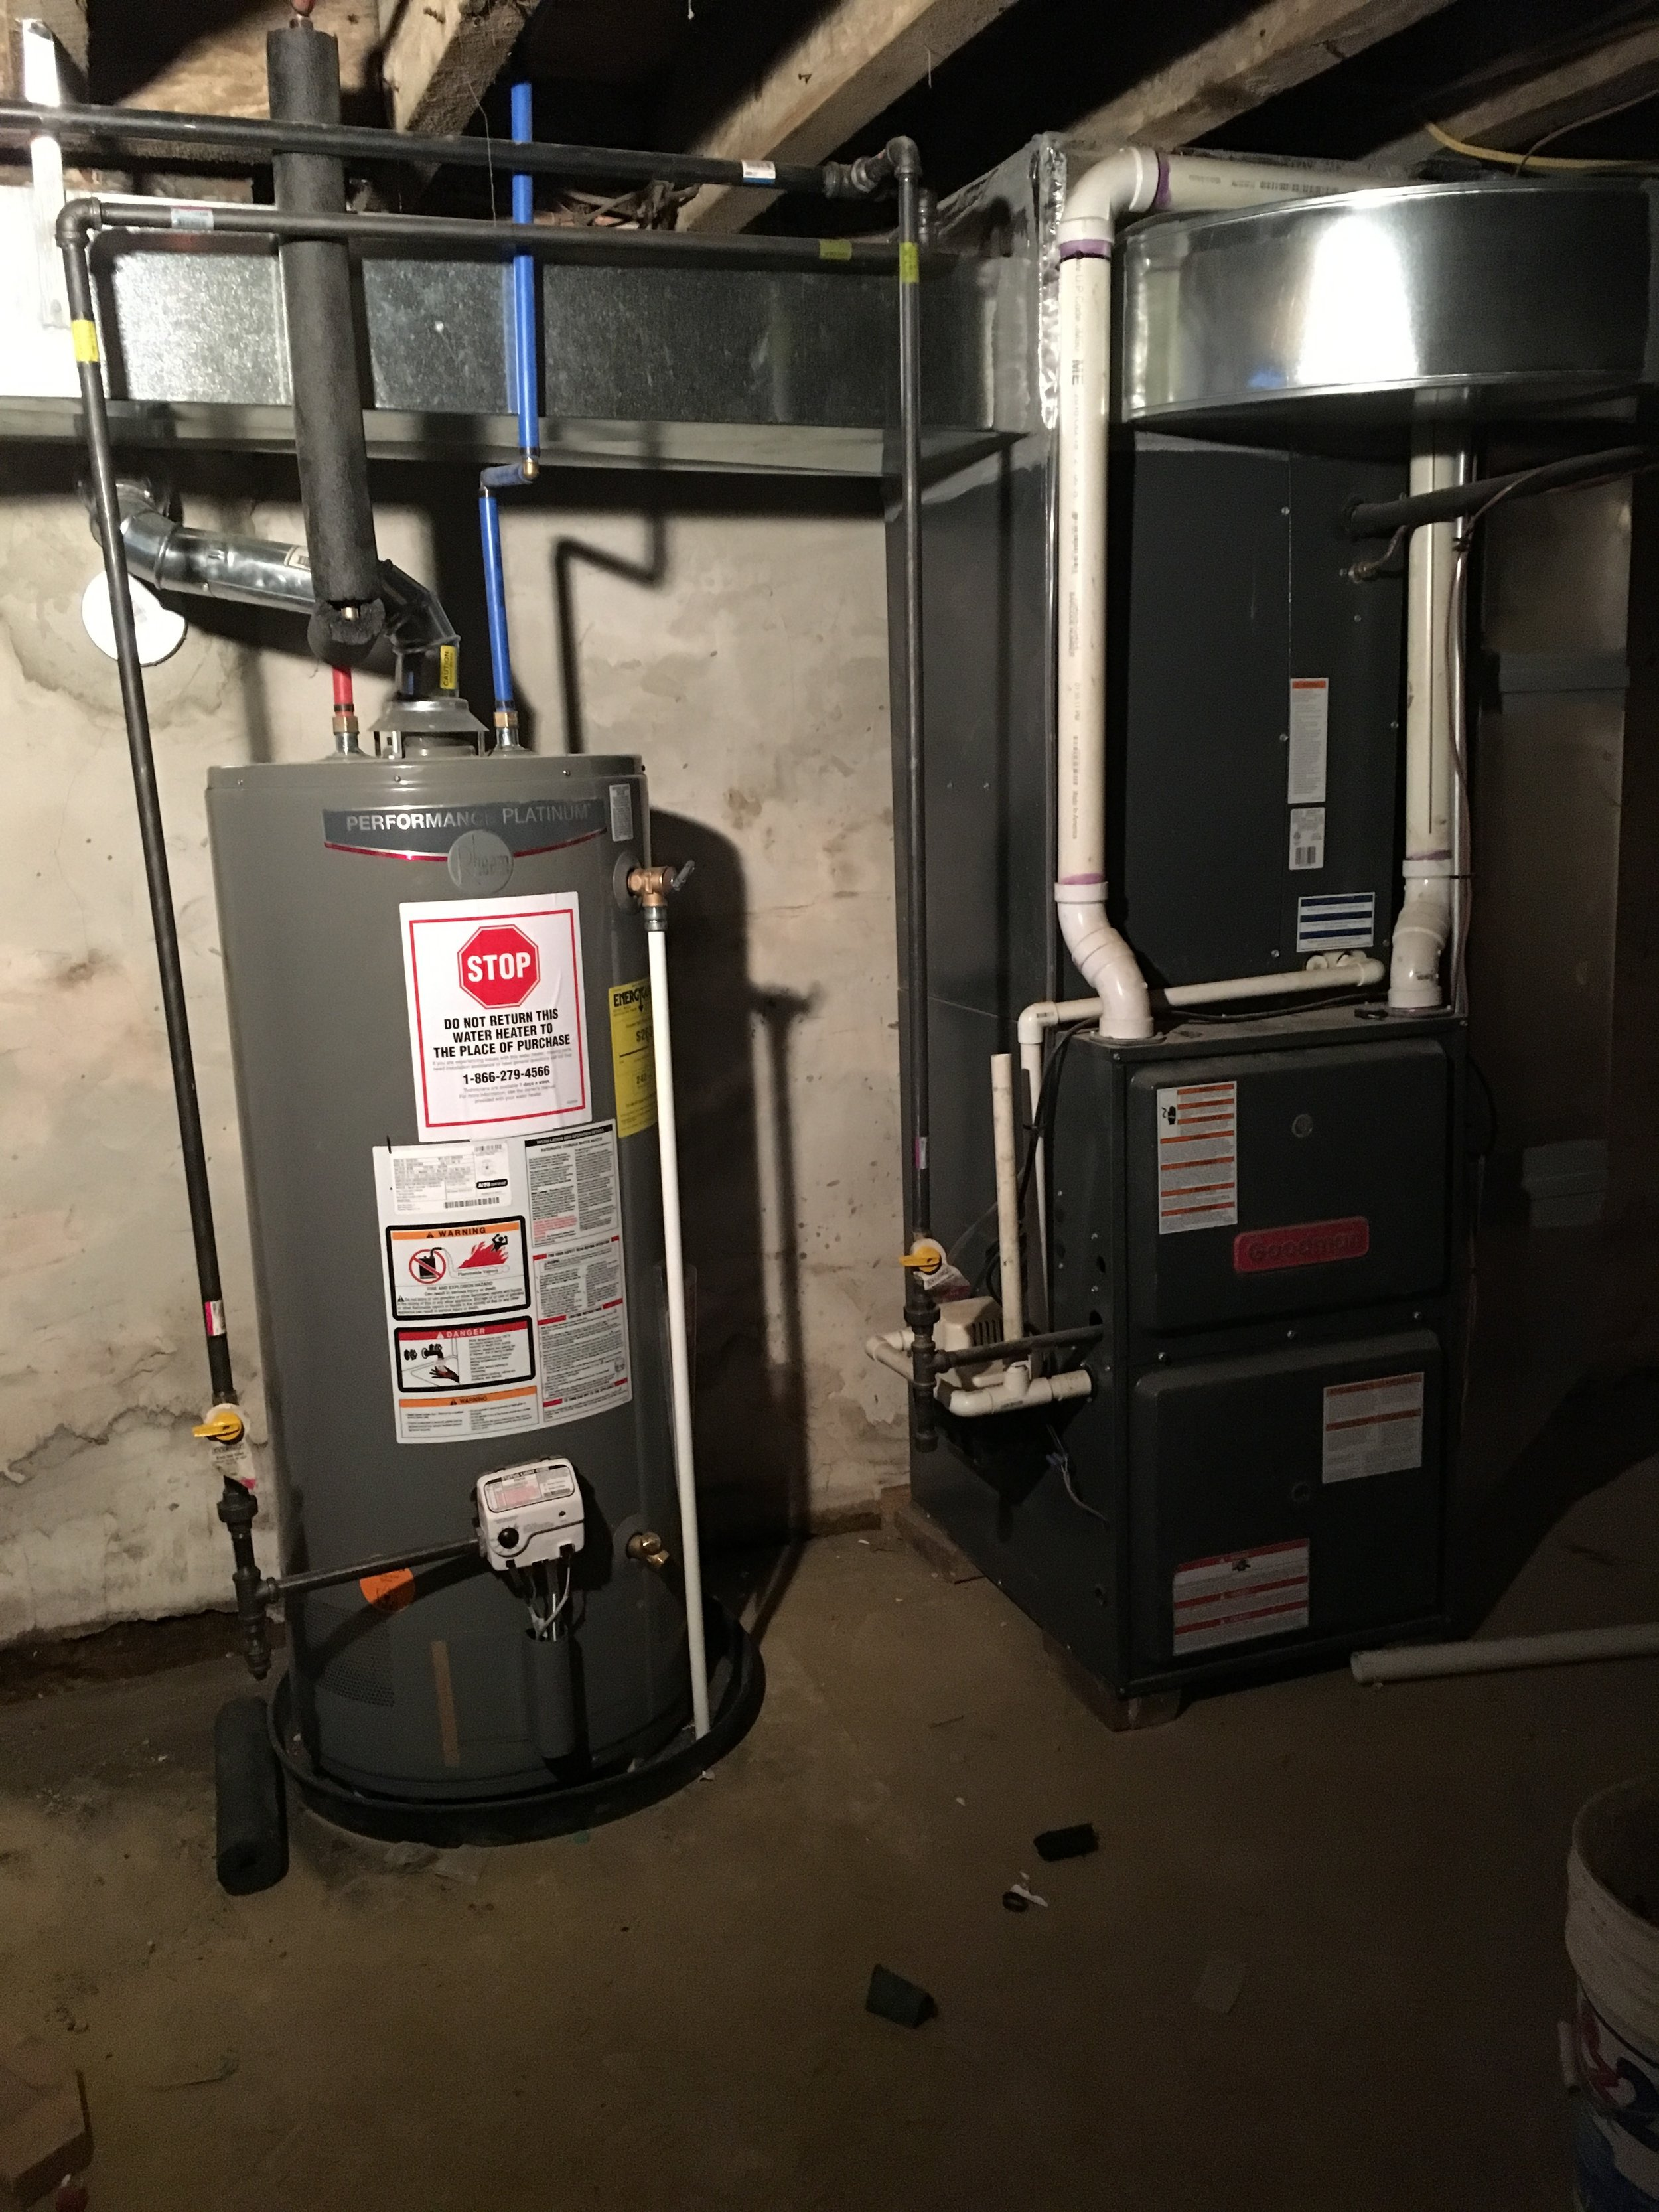 Hot Water Heater and Gas Furnace in Basement